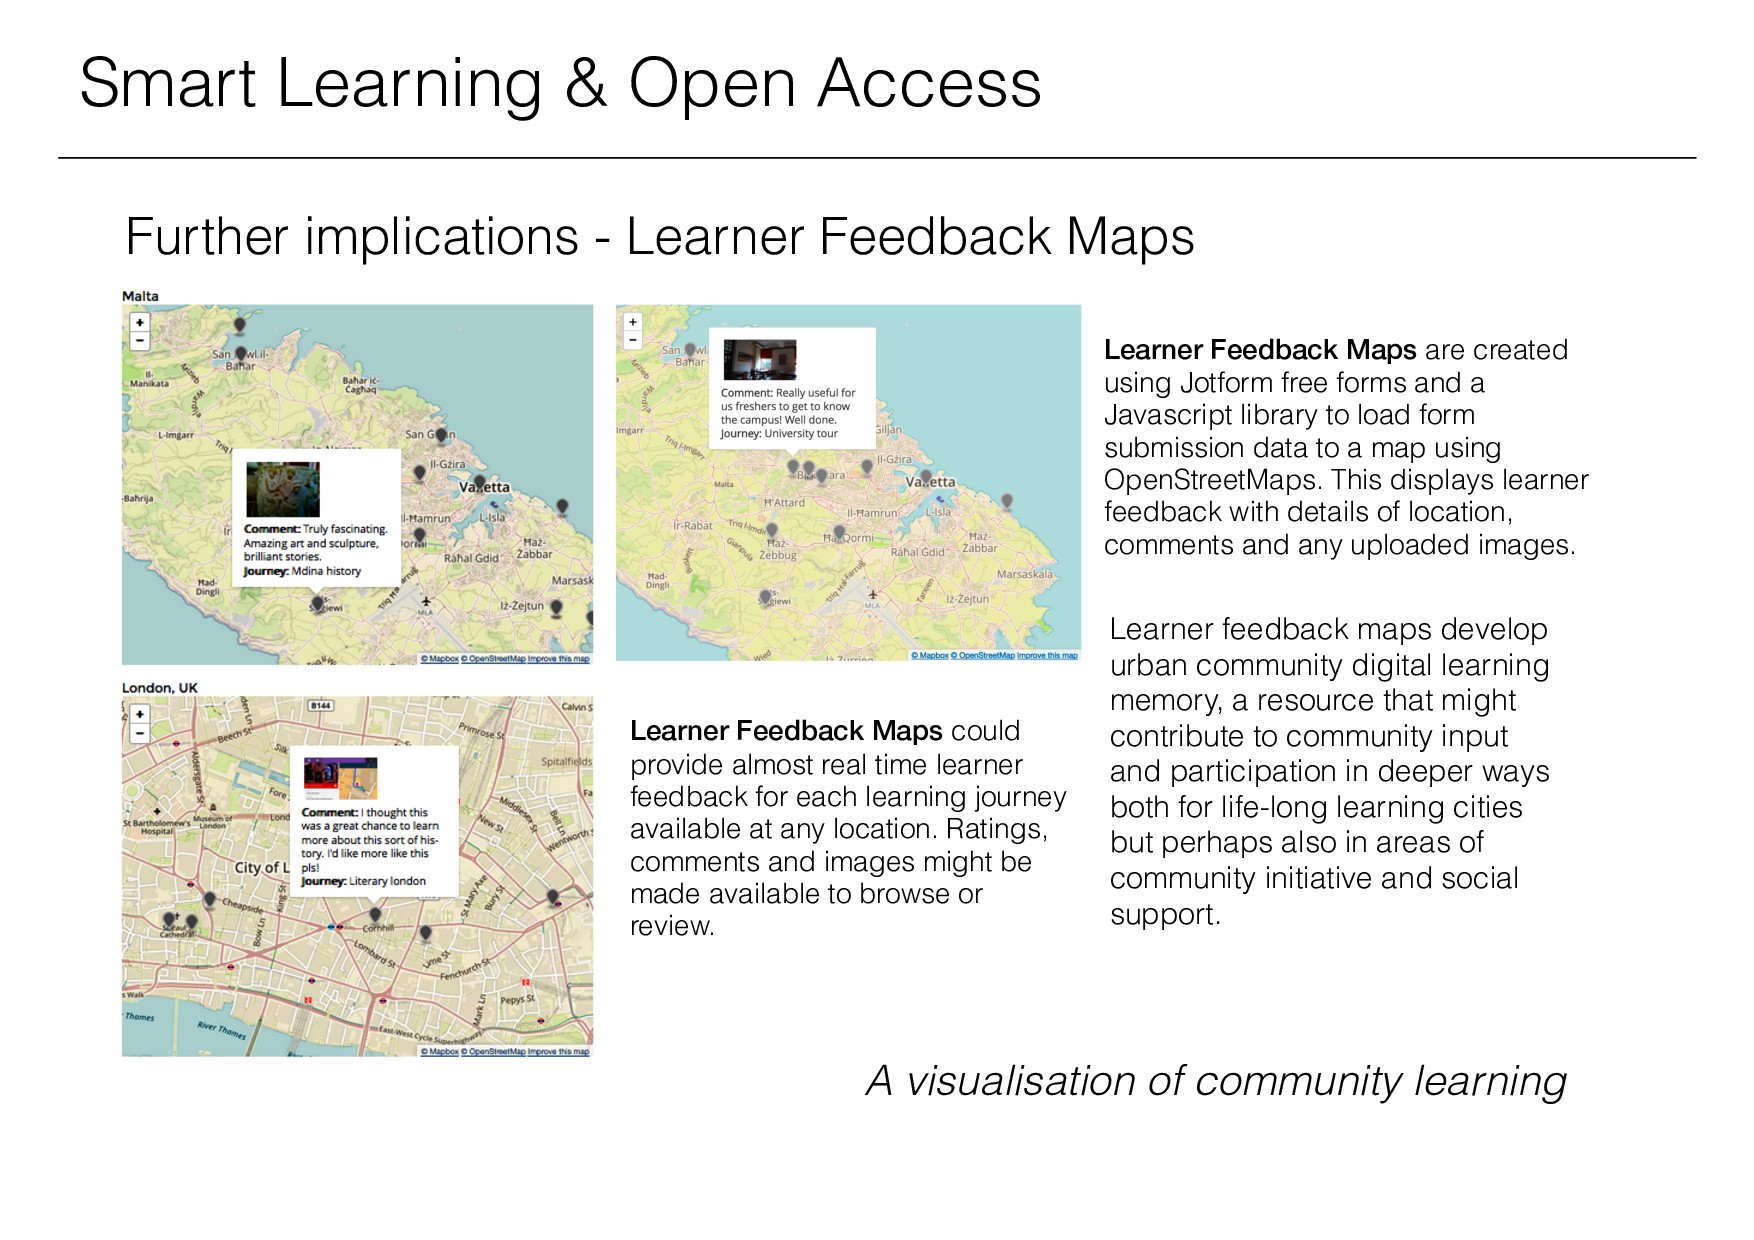 Learner Feedback Maps could provide almost real...